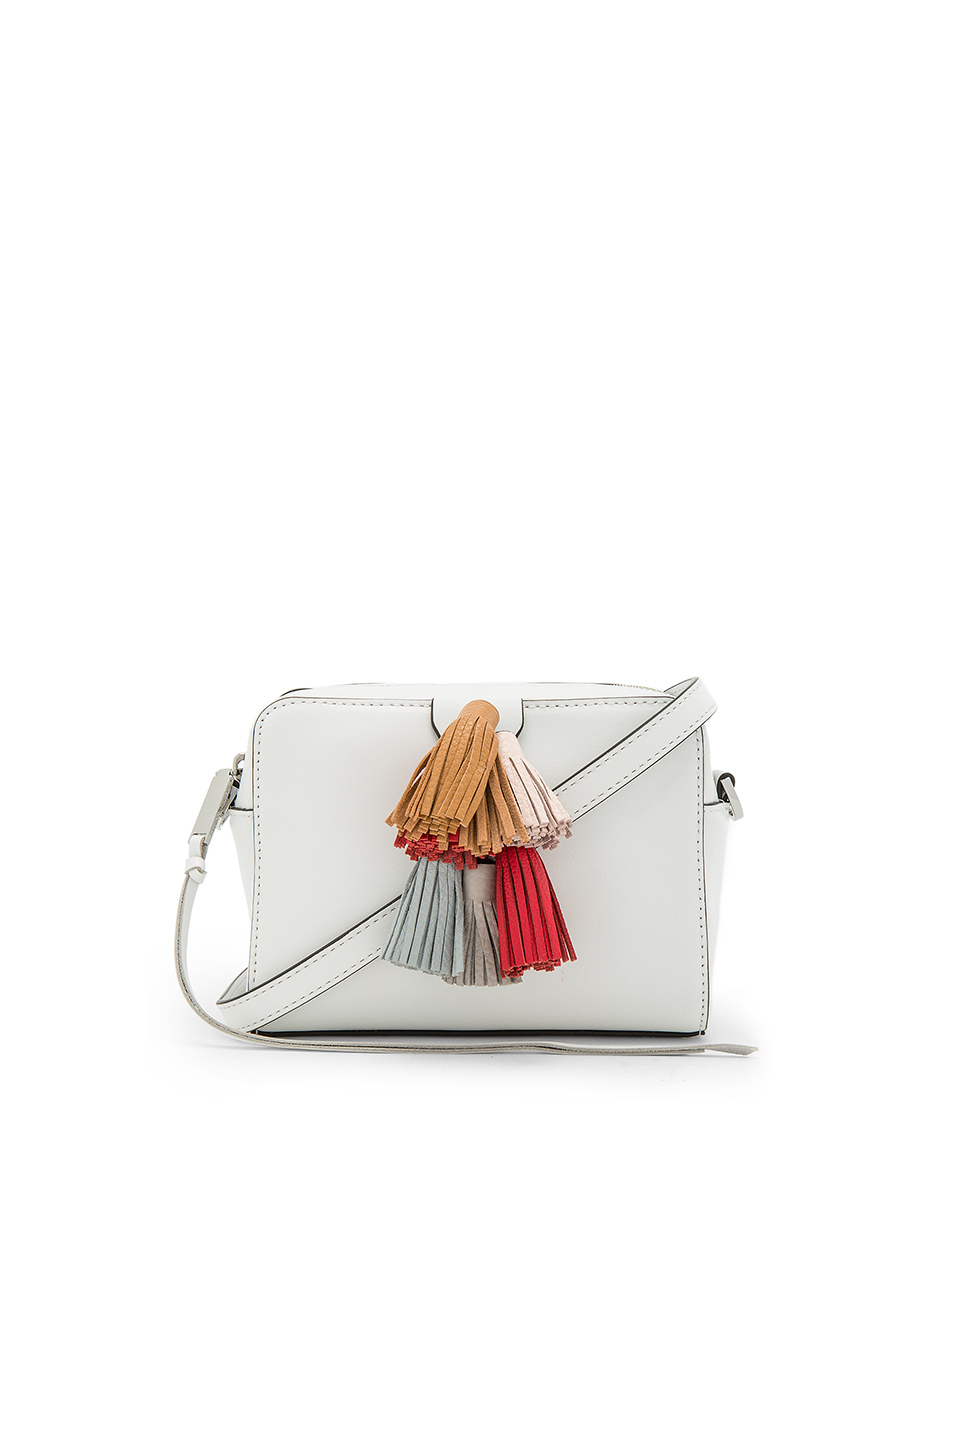 MINI SOFIA CROSSBODY TASSLE BAG